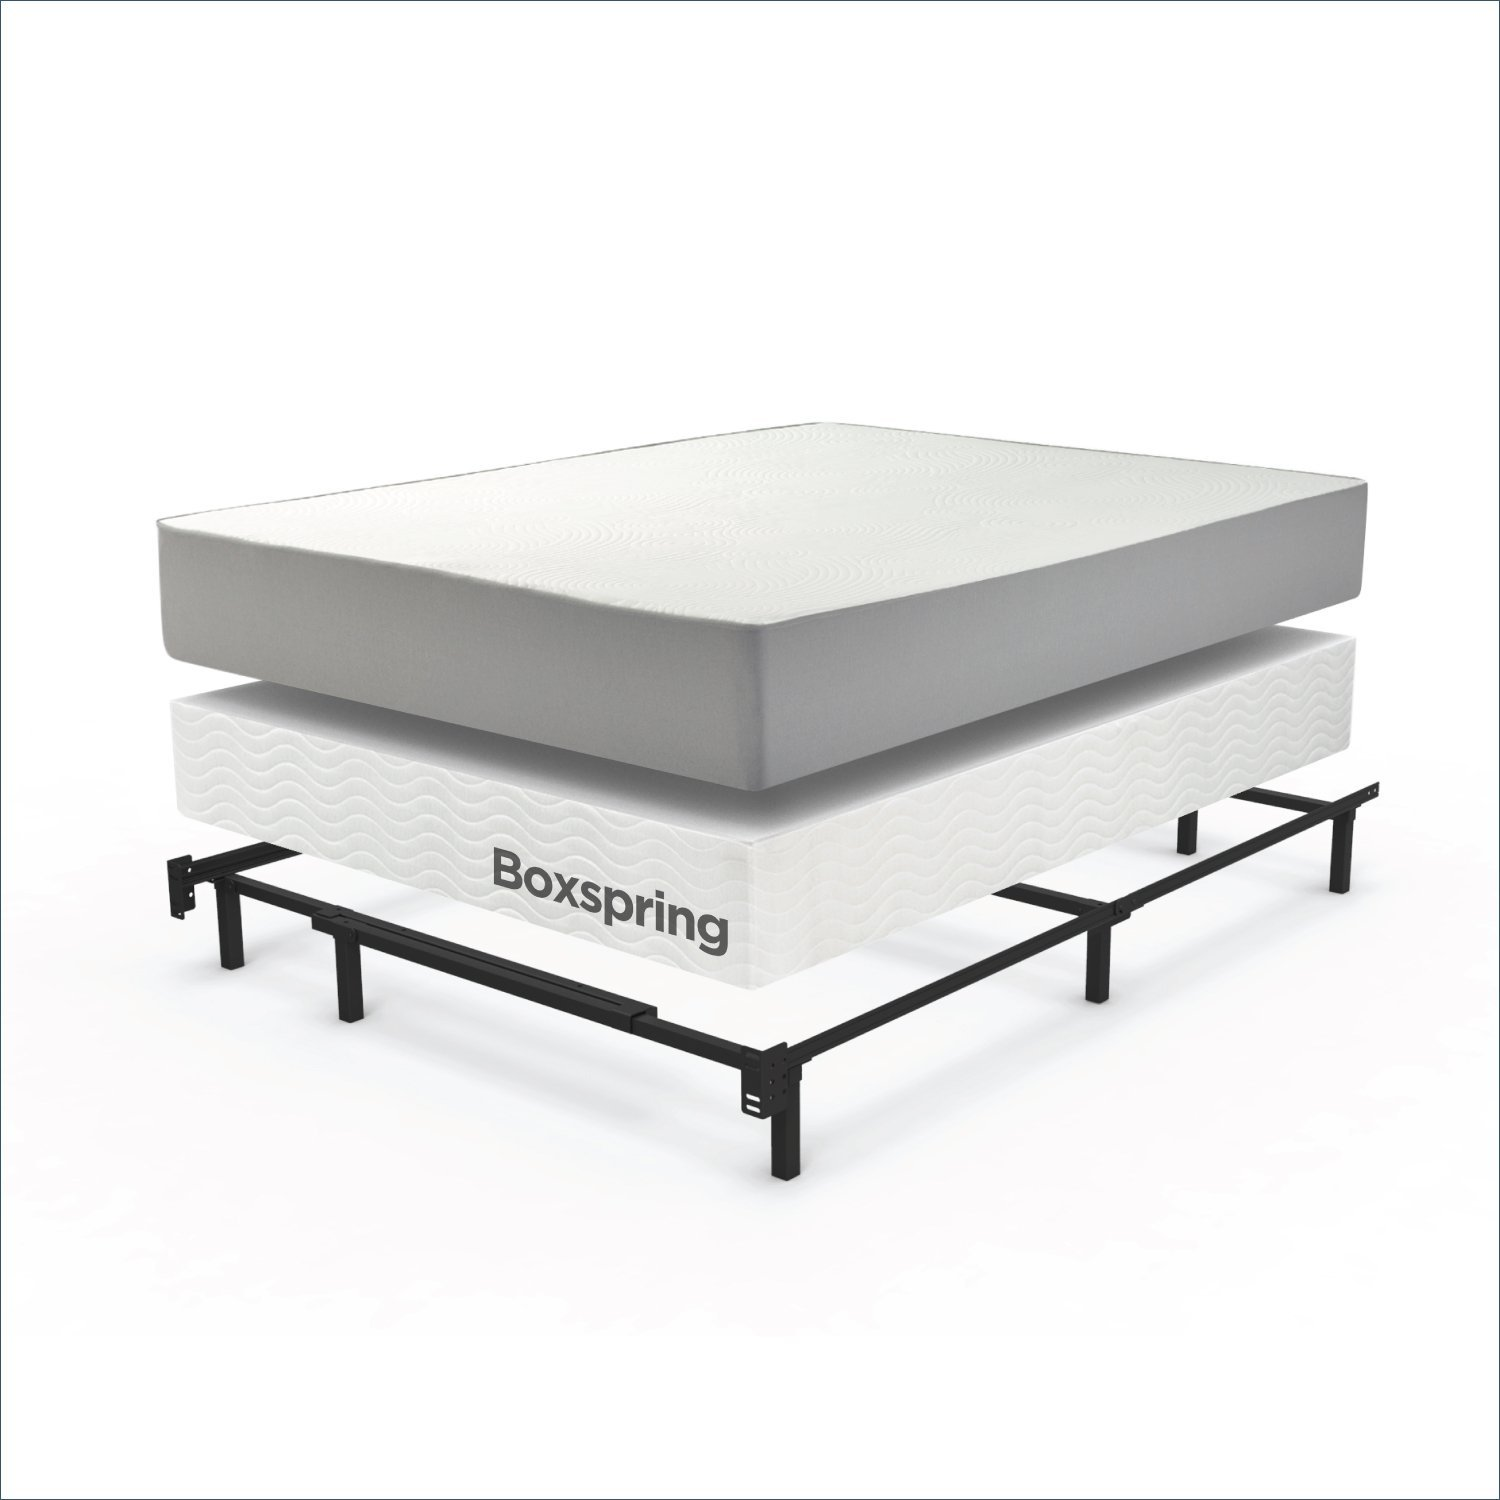 Top 10 Twin Size Beds Best Reviews For You 2020